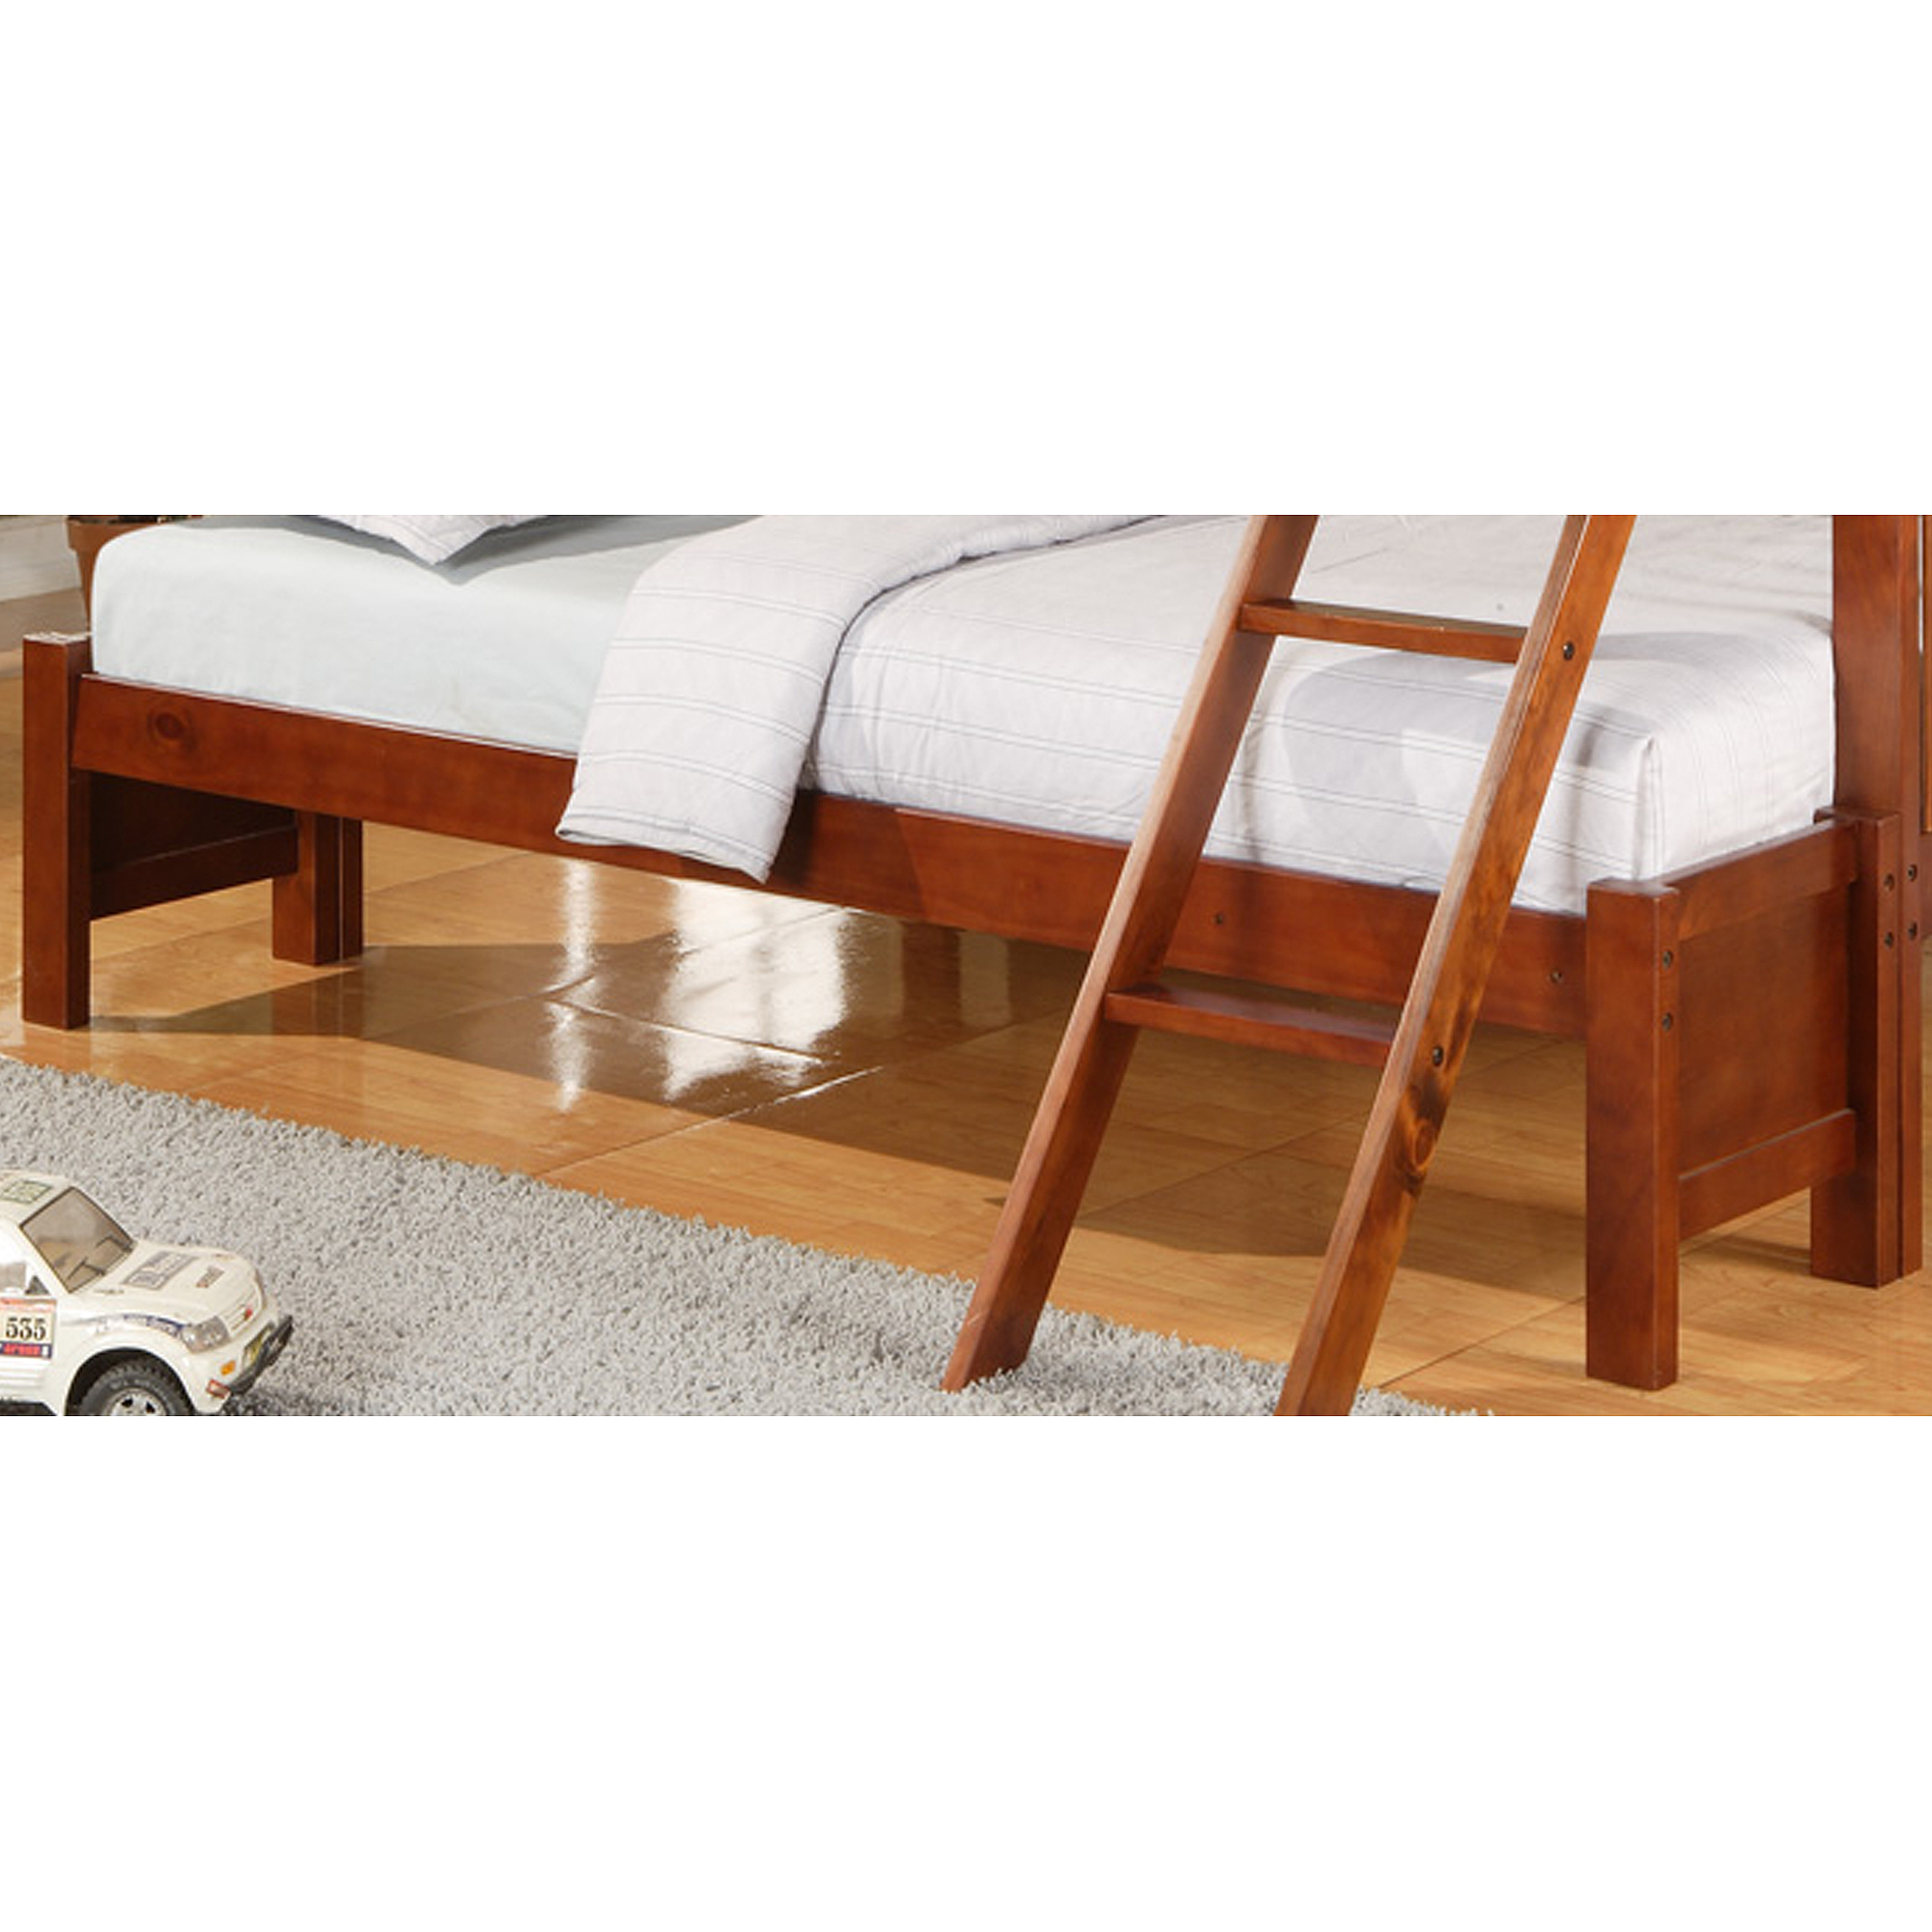 Elise Conversion Kit for Twin Over Full Bunk Bed, Mahogany